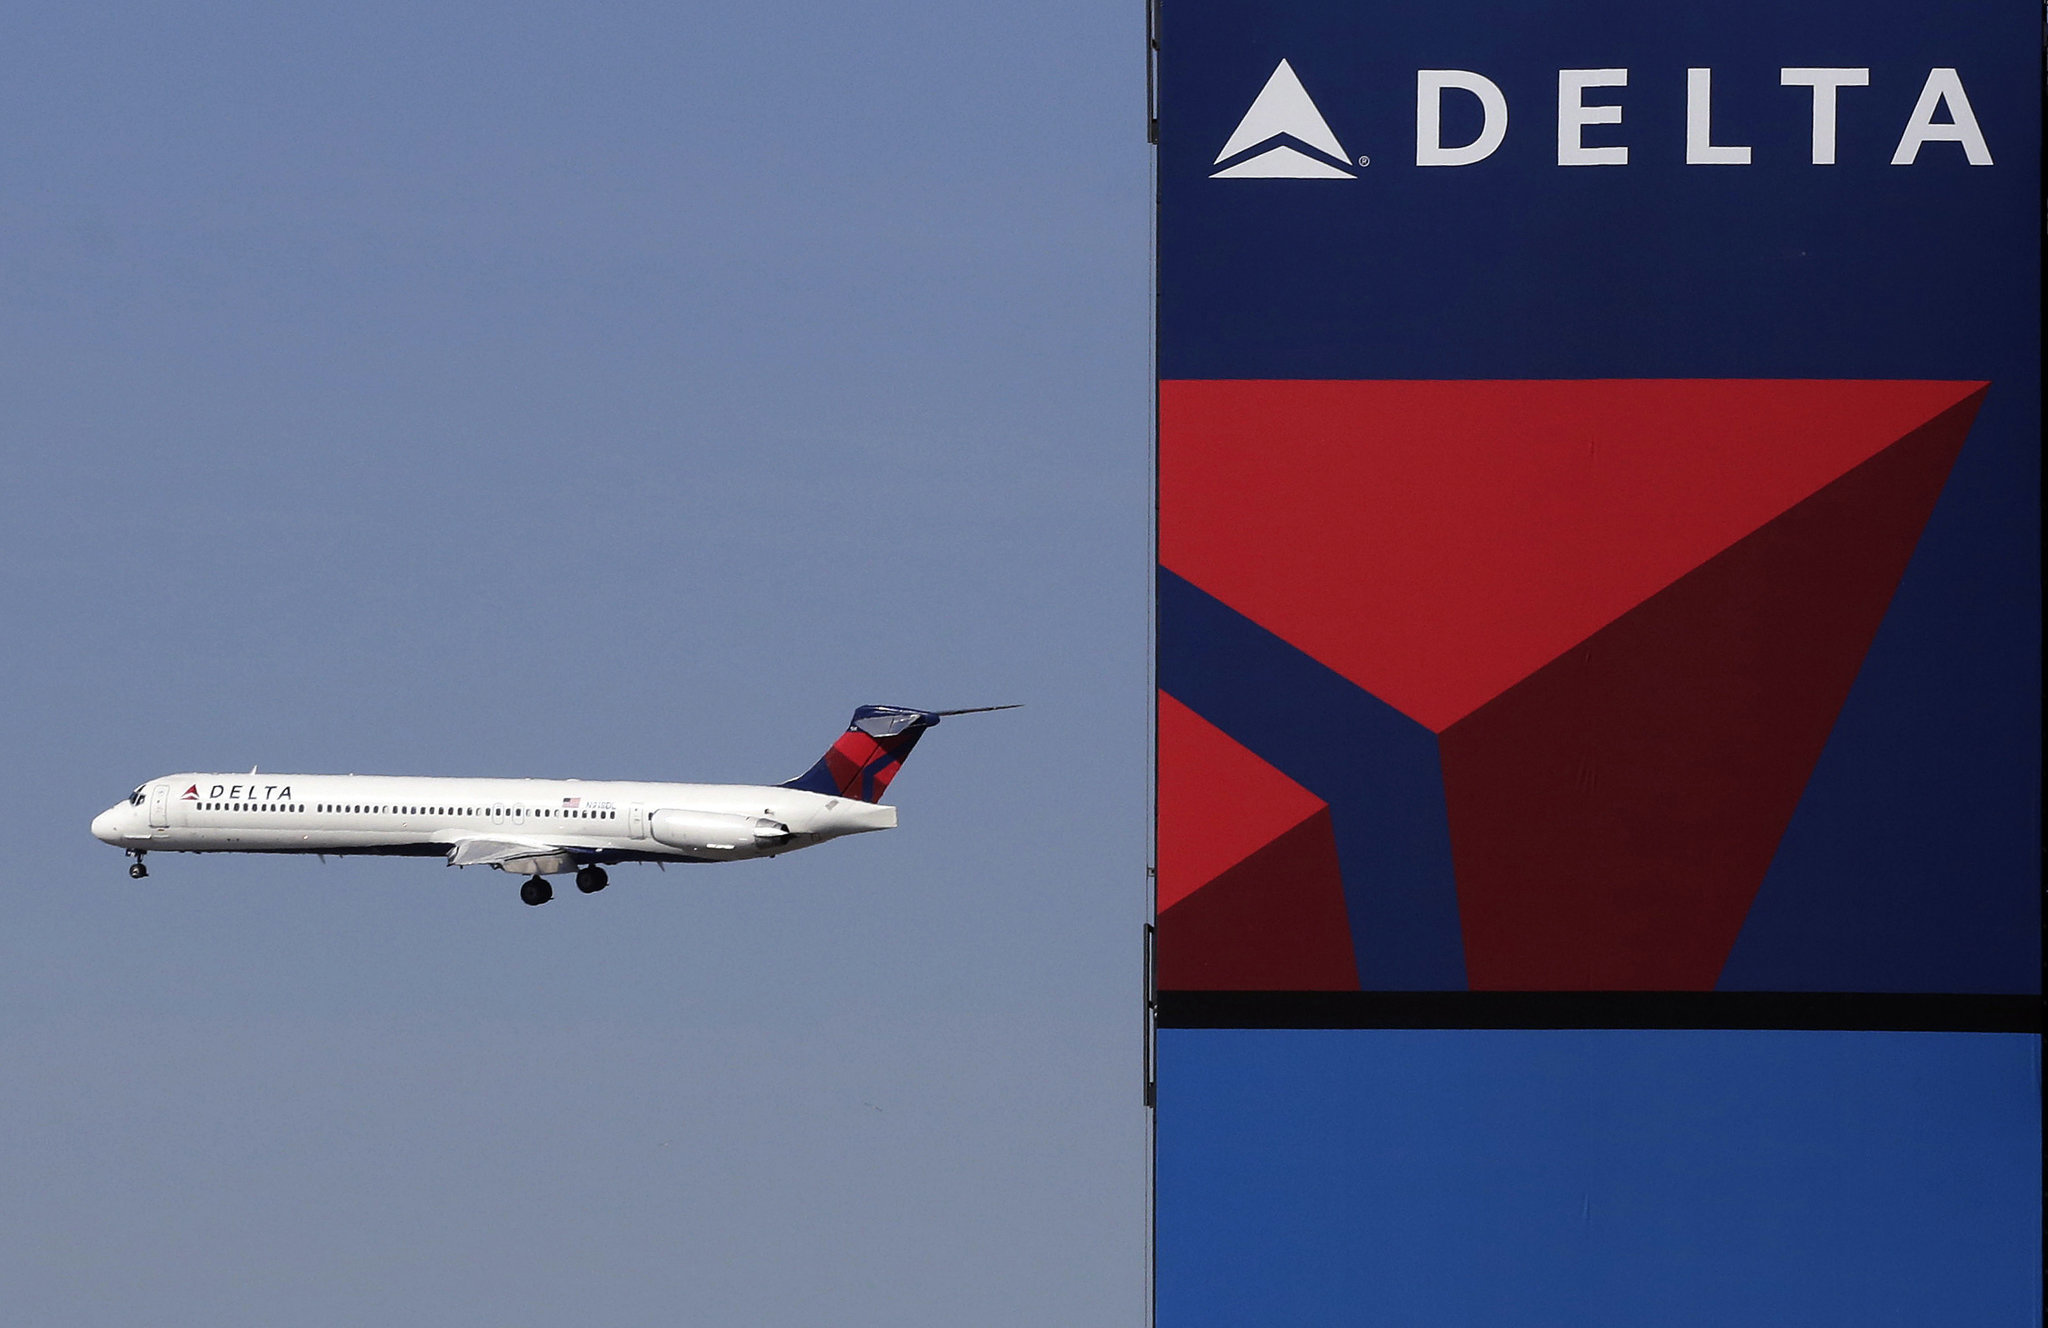 Man bitten on Delta flight by another passenger's dog